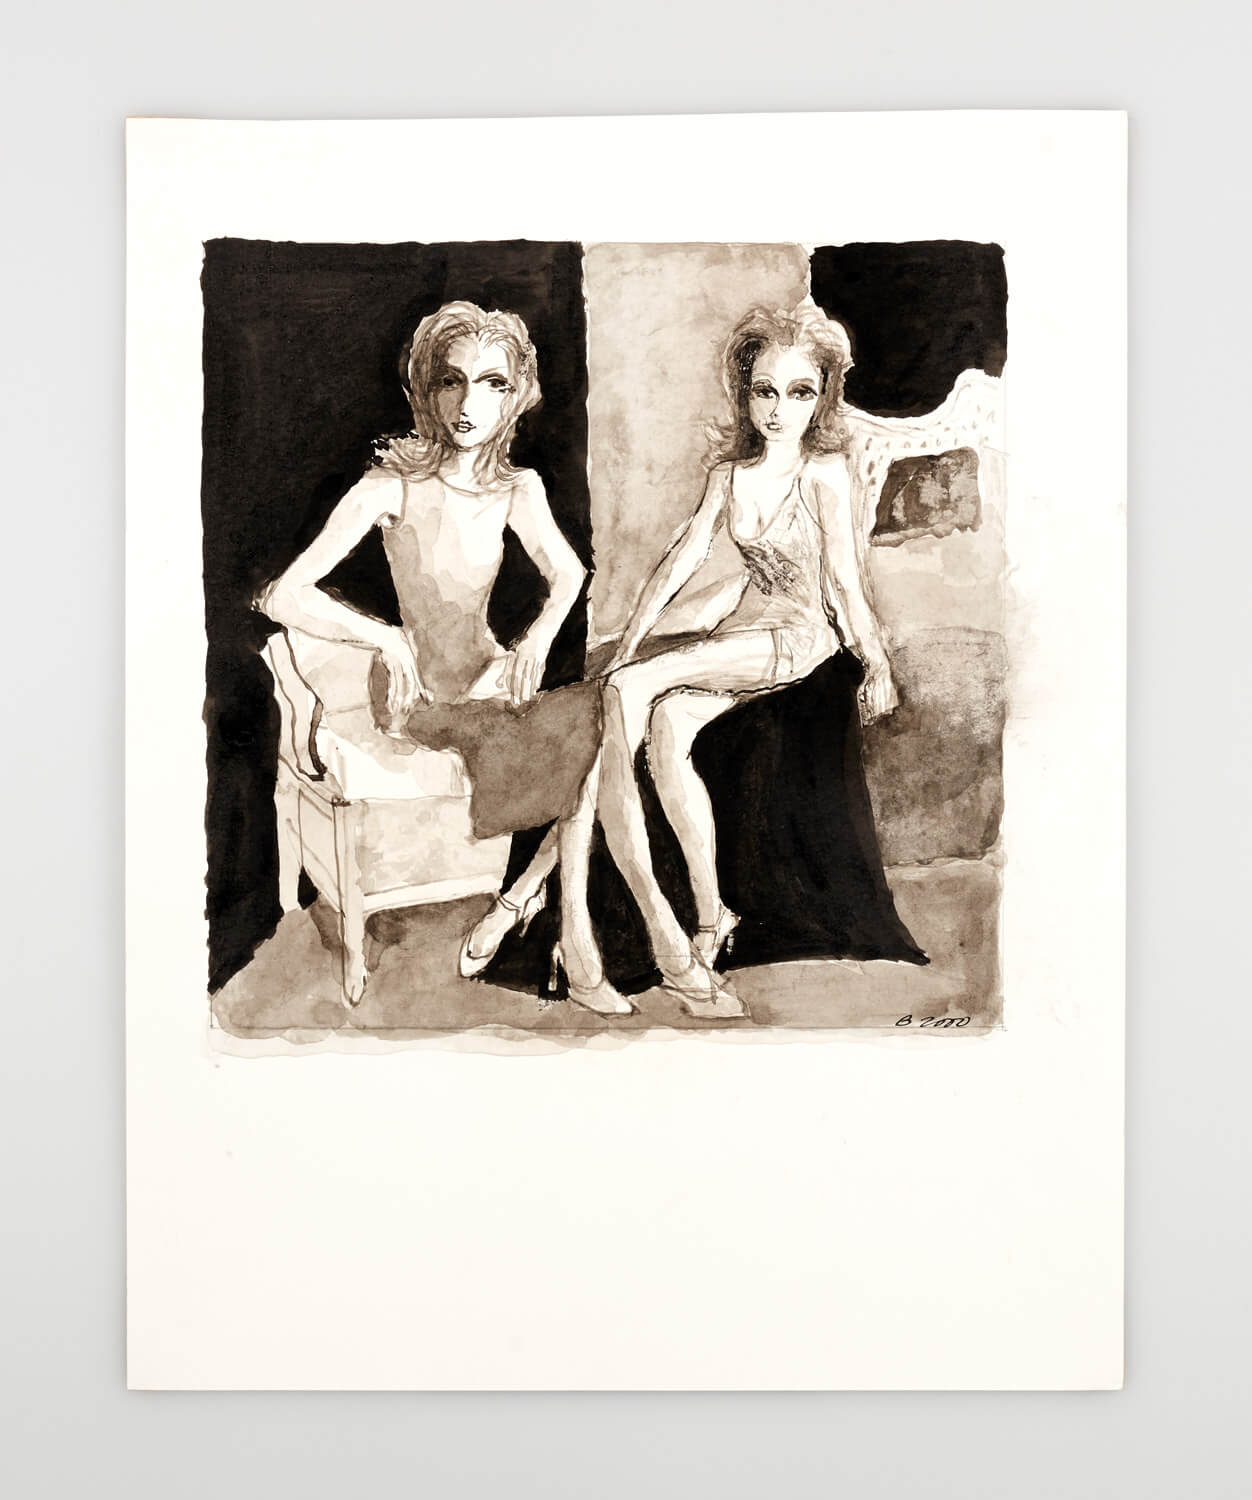 JB108 - Two Mannequins - 2000 - 28 x 28 cm - Indian ink and wash on paper